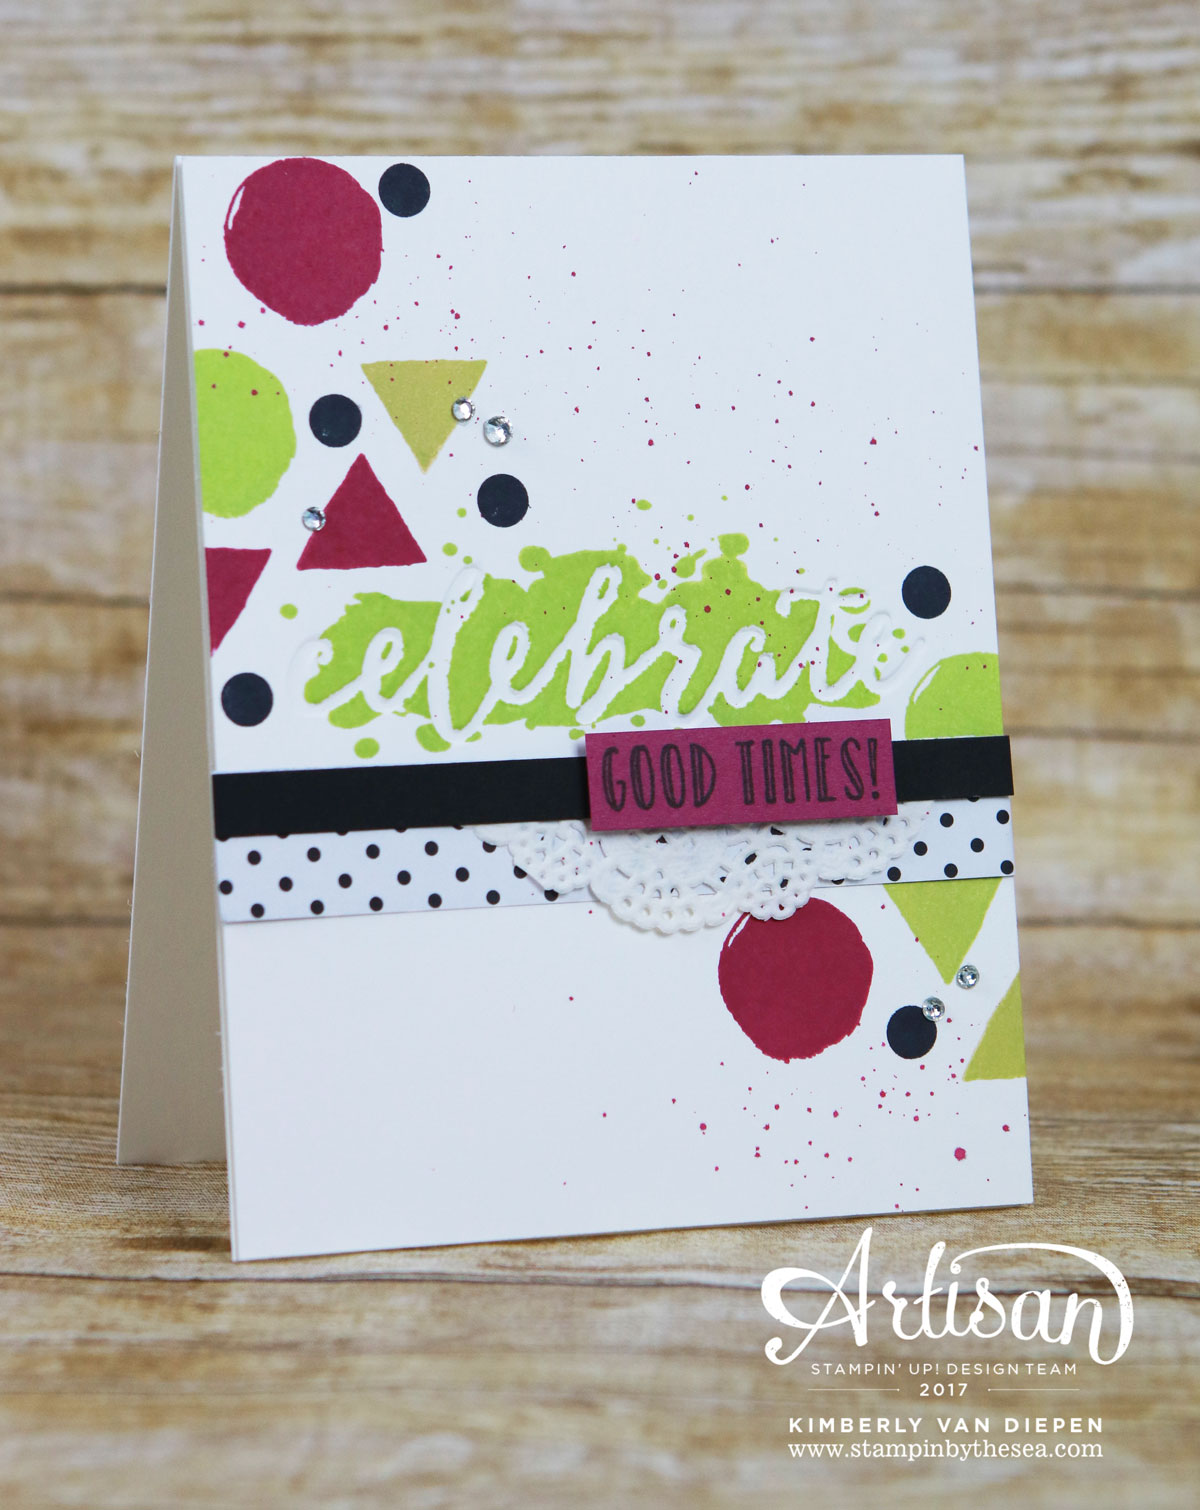 Celebrating, Stampin' Up! Happy Celebrations